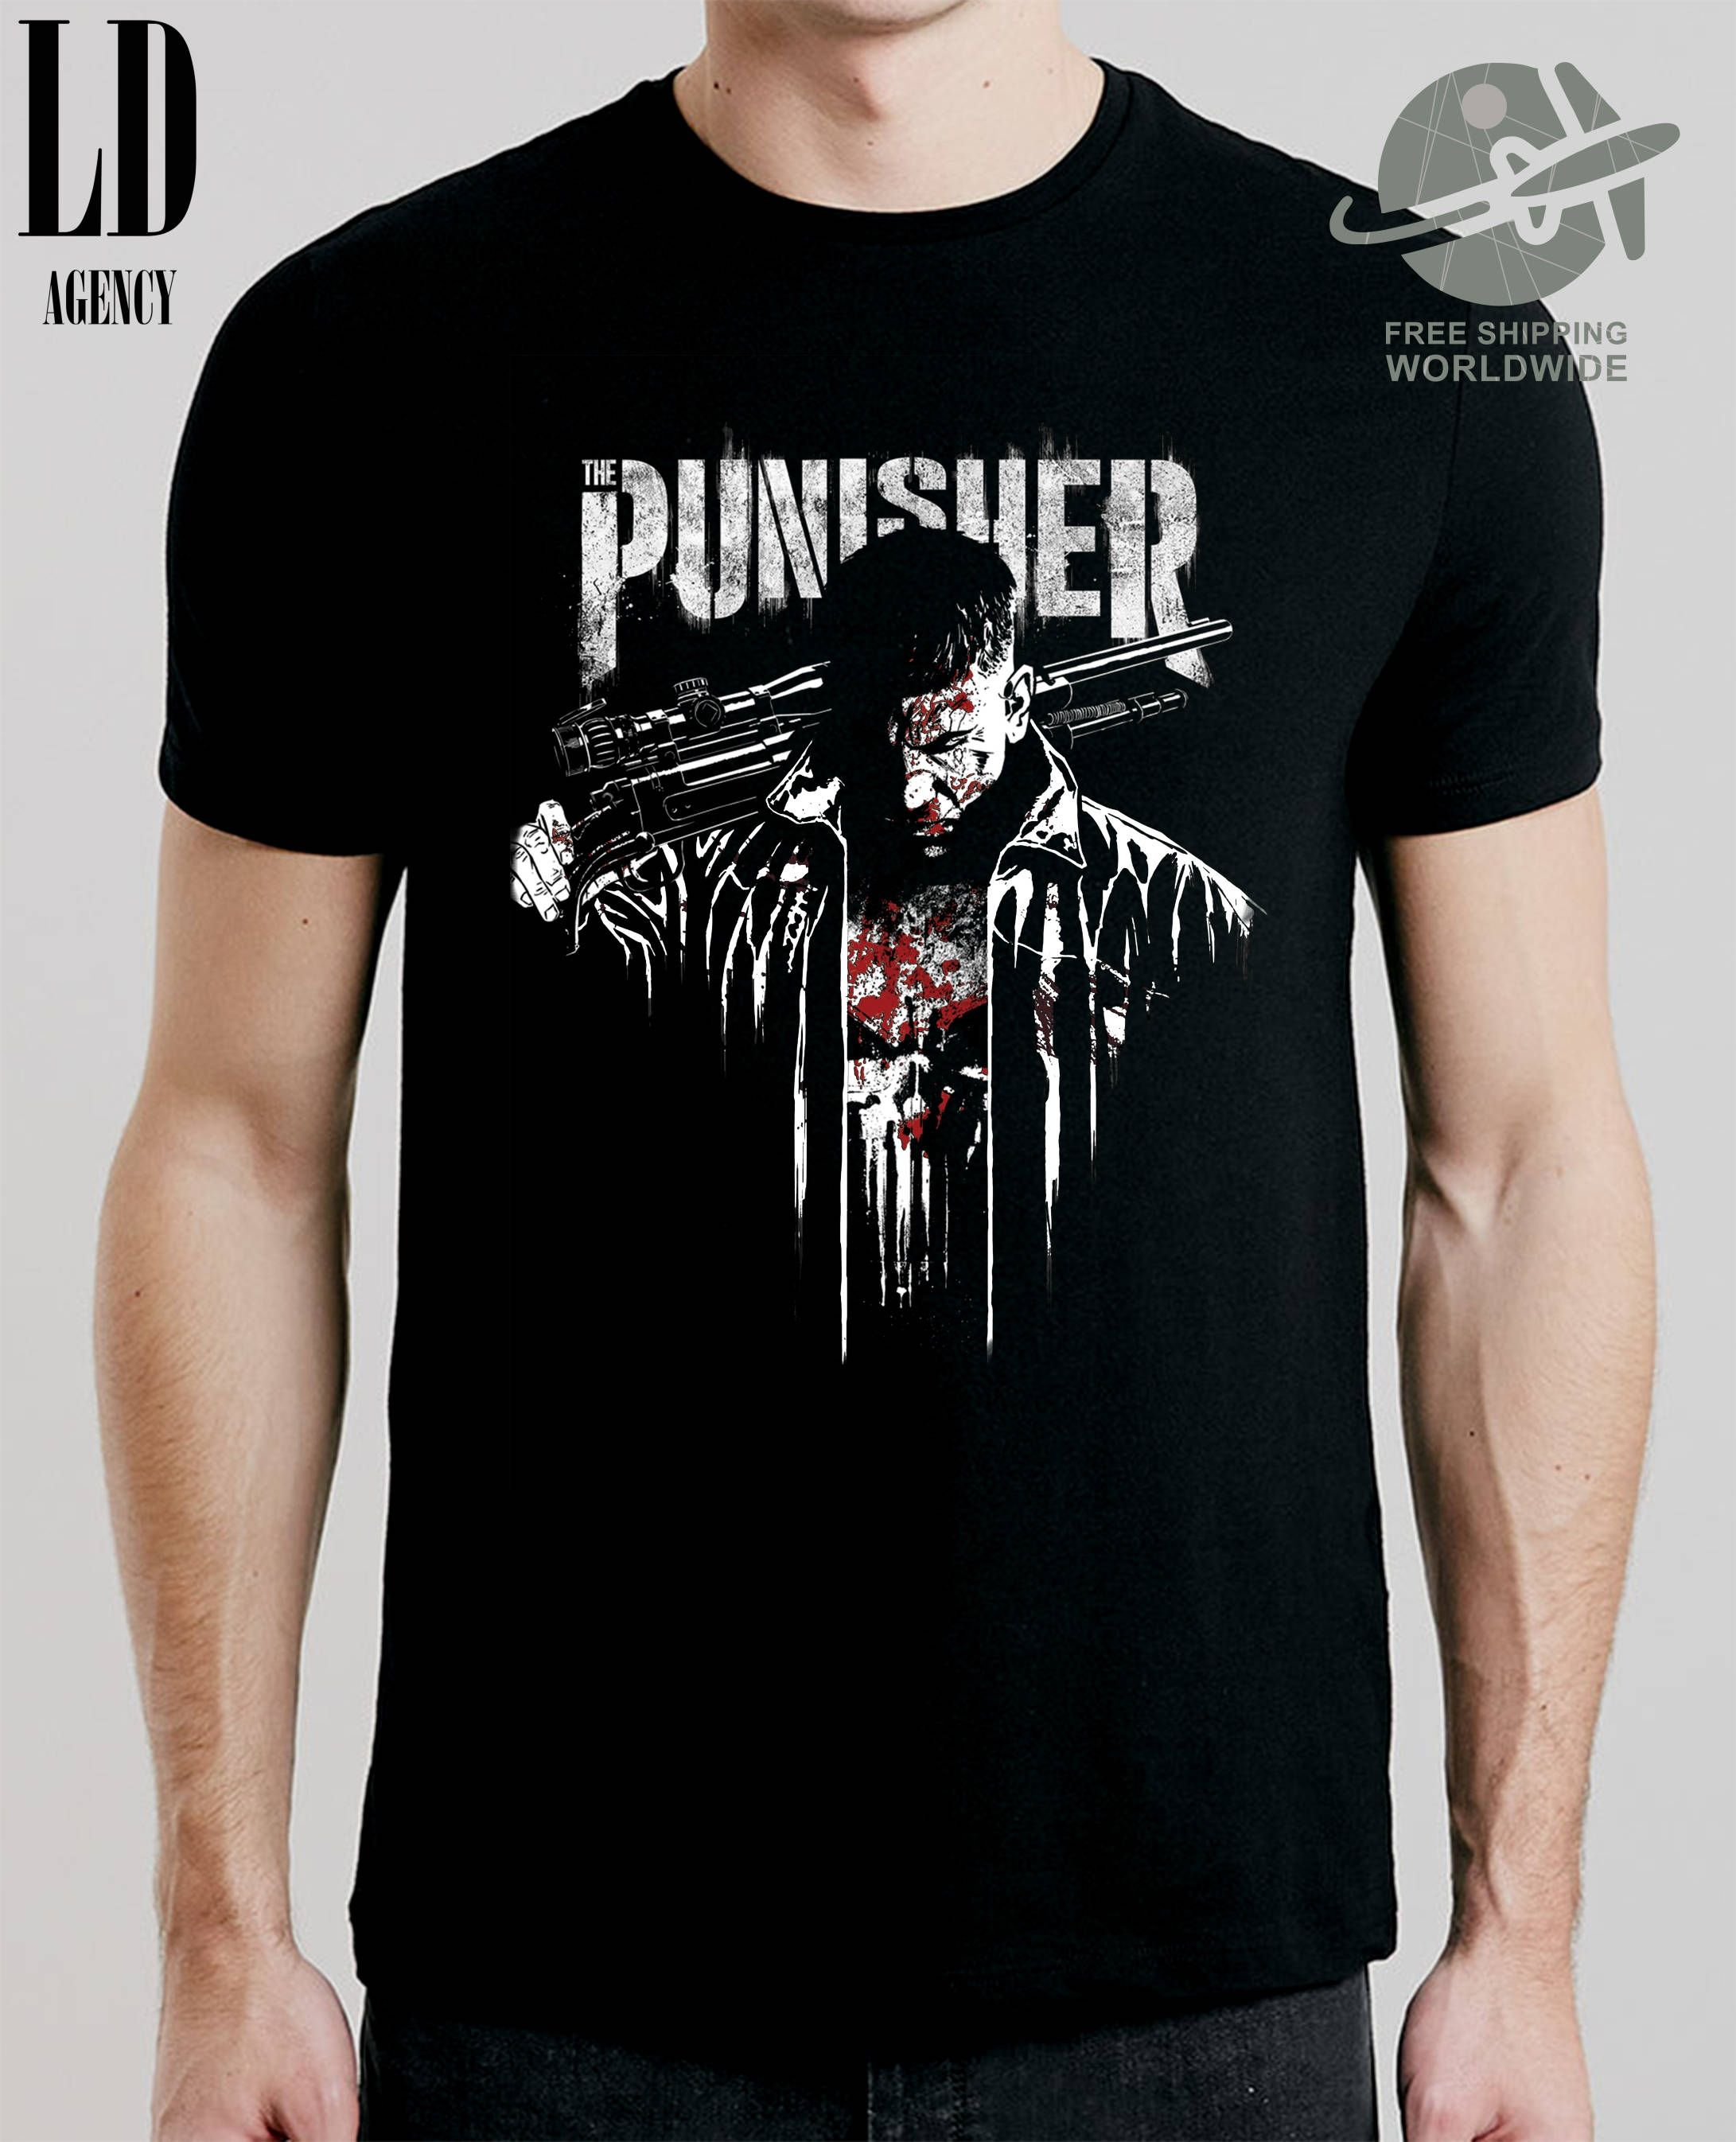 59c72147d T-SHIRT THE PUNISHER / tshirt comi-con / tee tv series / tshirts marvel /  tees horror / tshirt frank castle / marine / veteran by LDAgency on Etsy